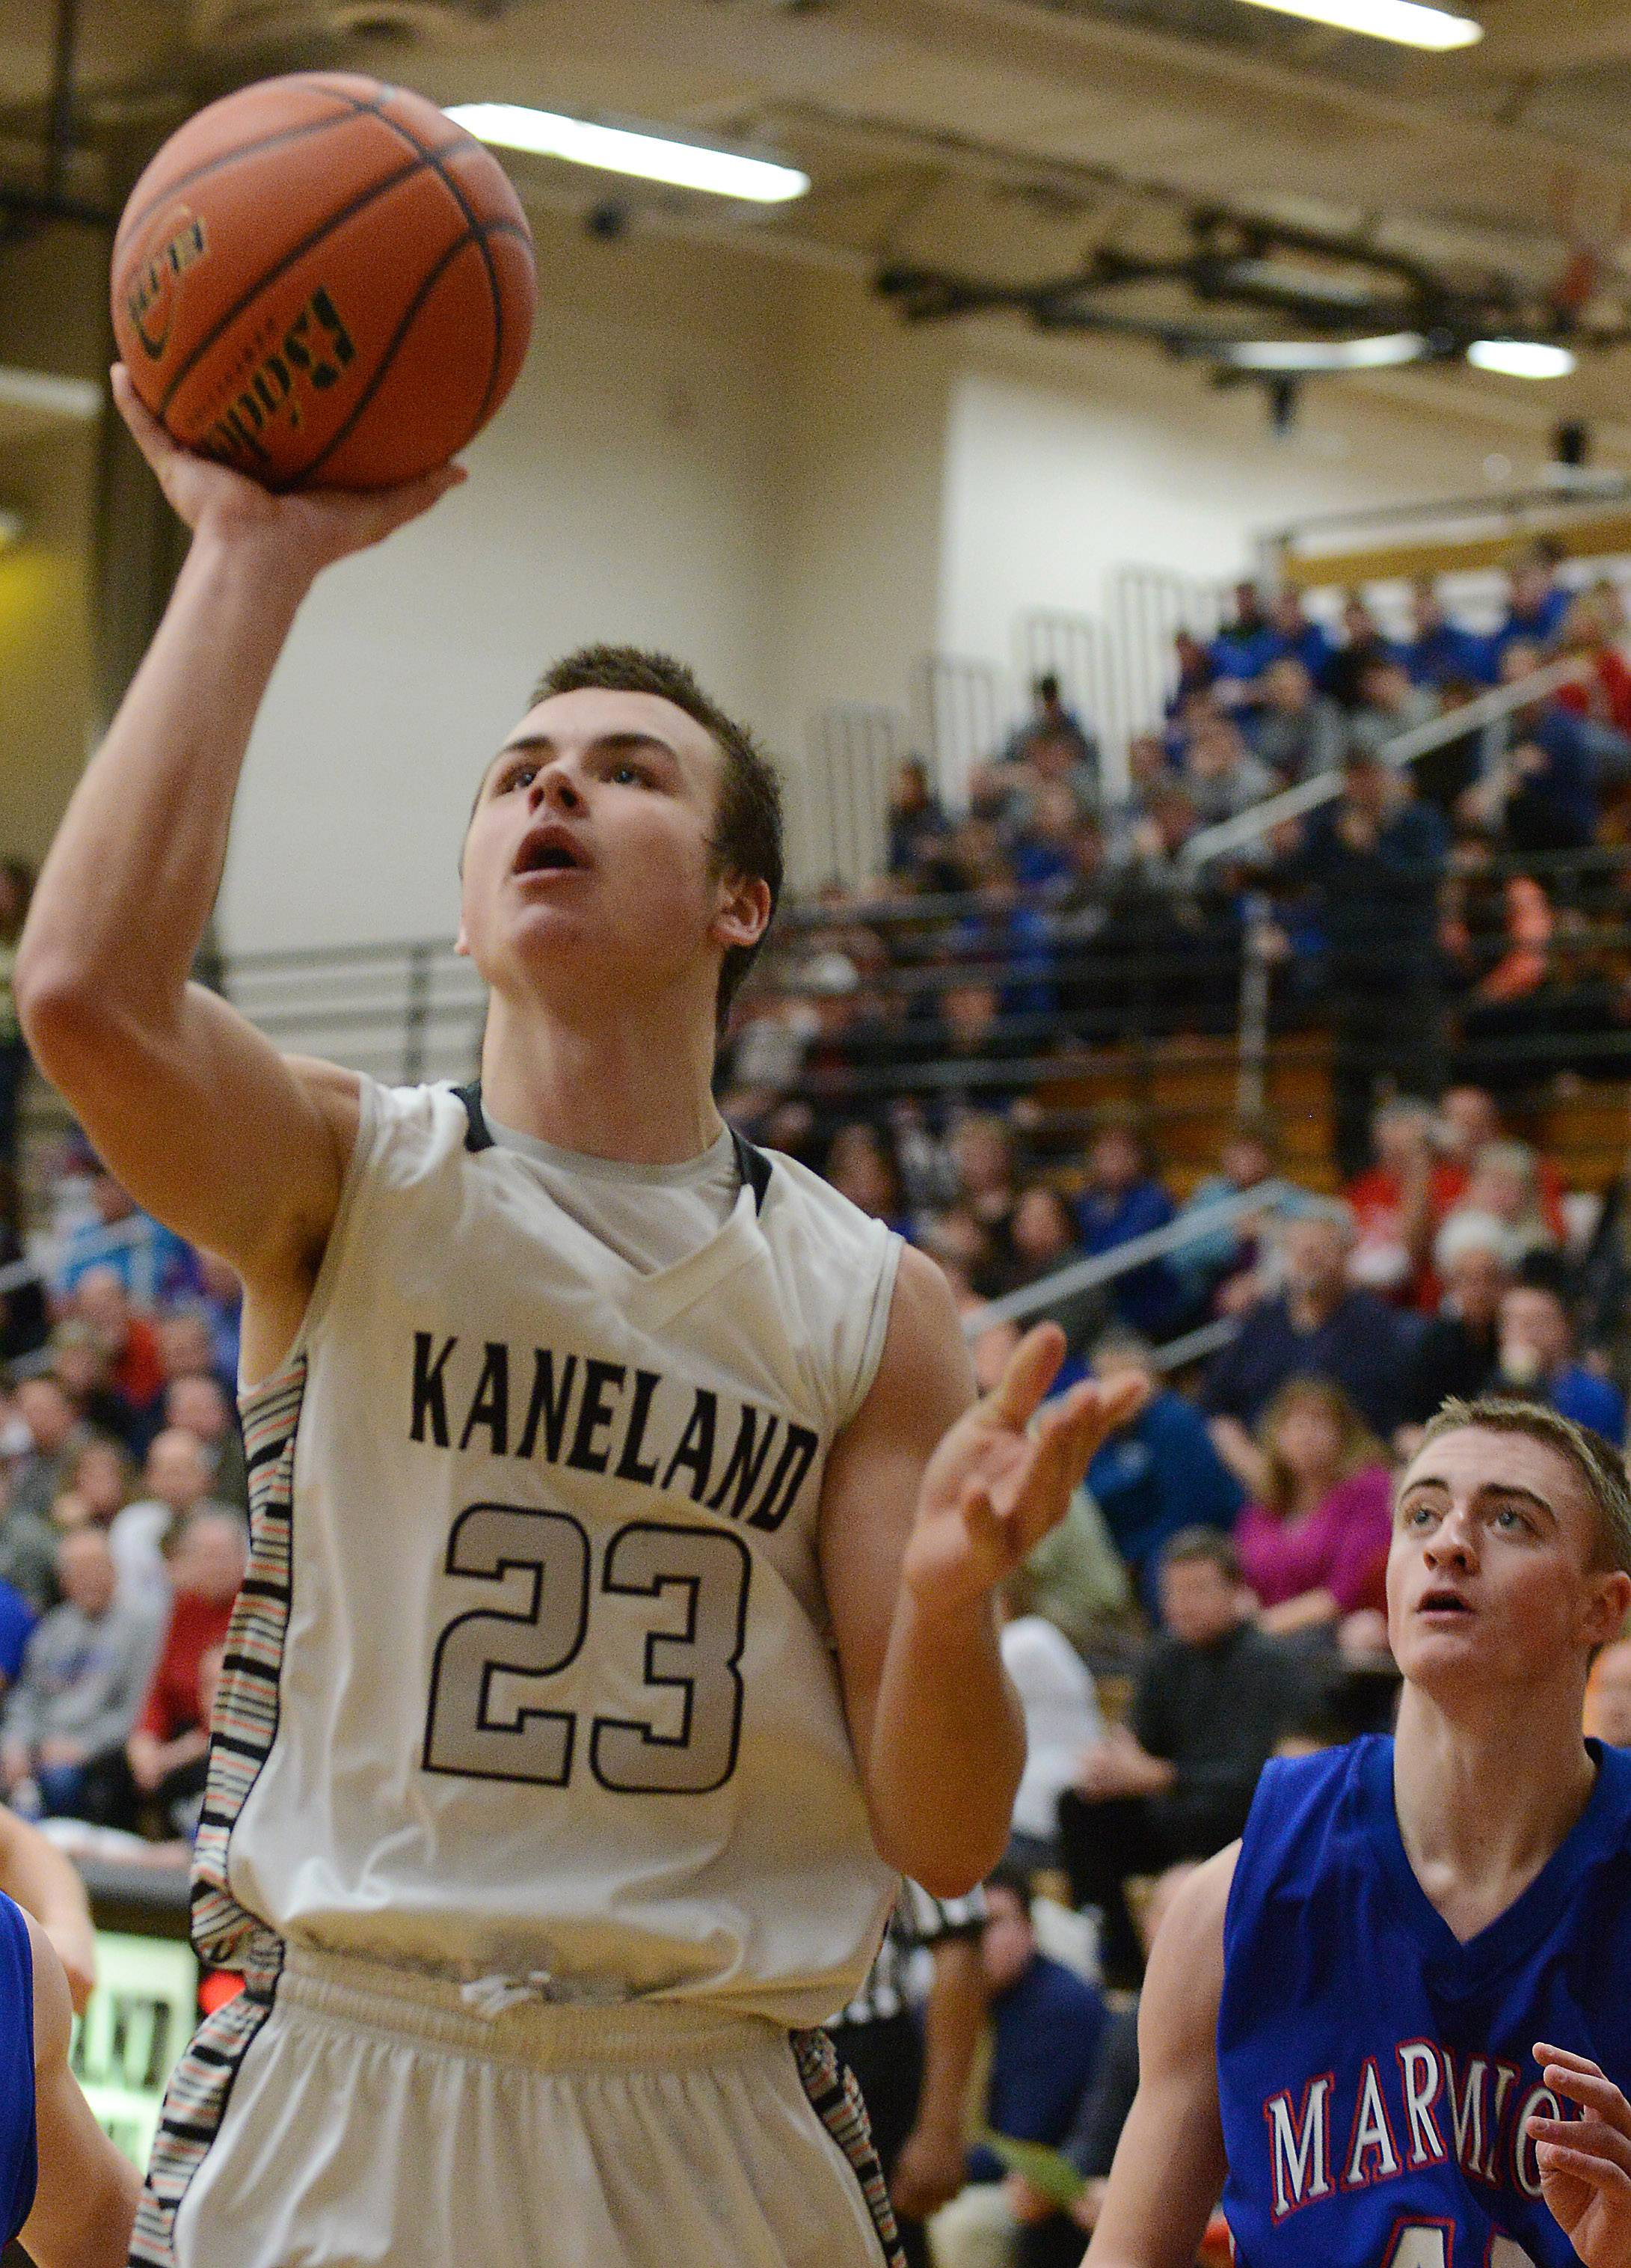 Kaneland's Tyler Carlson slips into the lane and scores on a running one-hander.